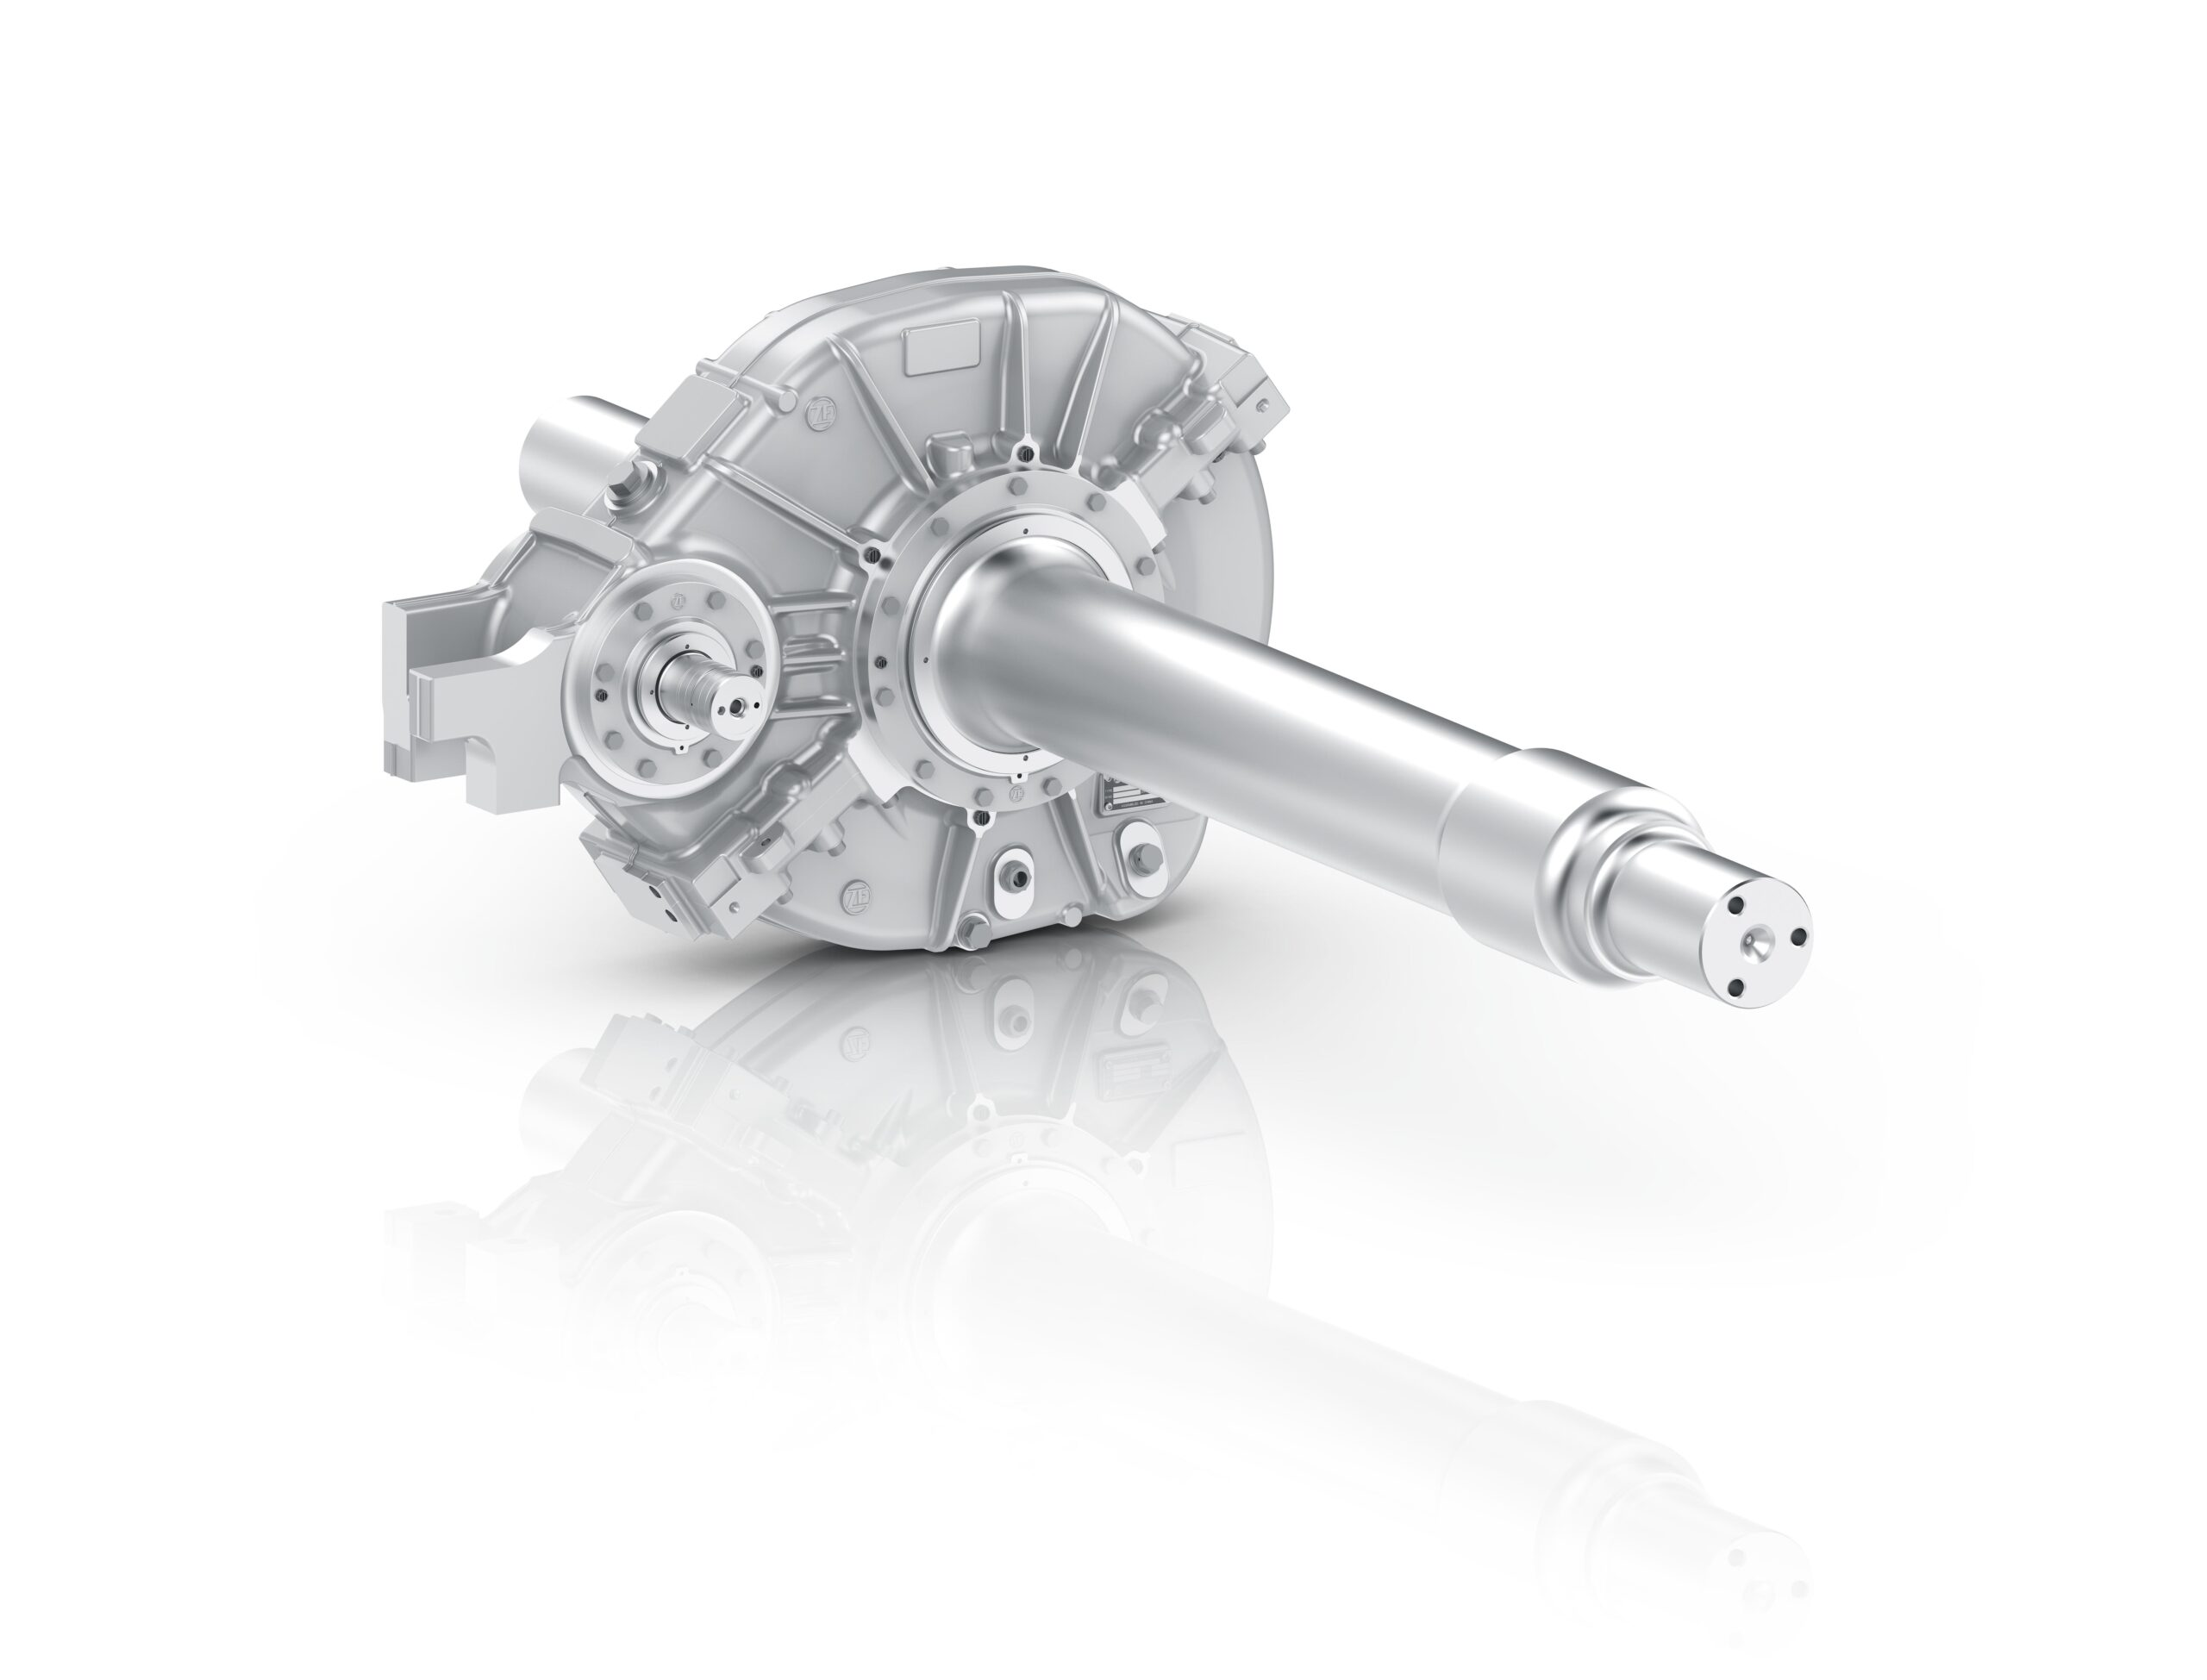 ZF EcoMet modular gearbox for metro vehicles